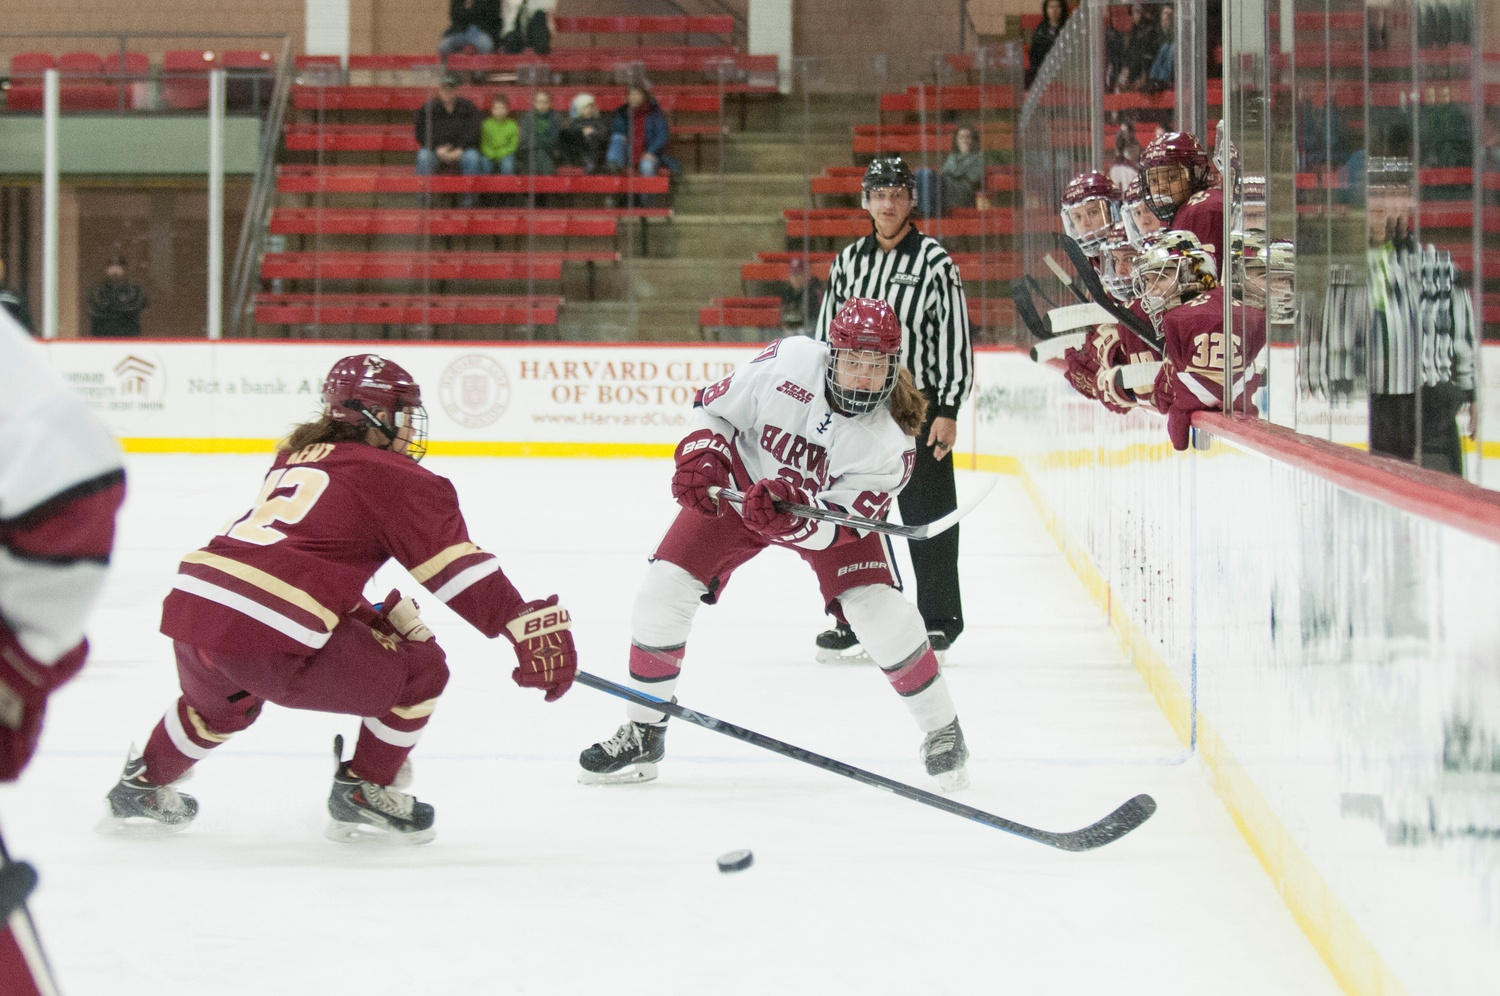 The Beanpot title came after the Crimson fell to Boston College earlier in the season by a 10-2 score.